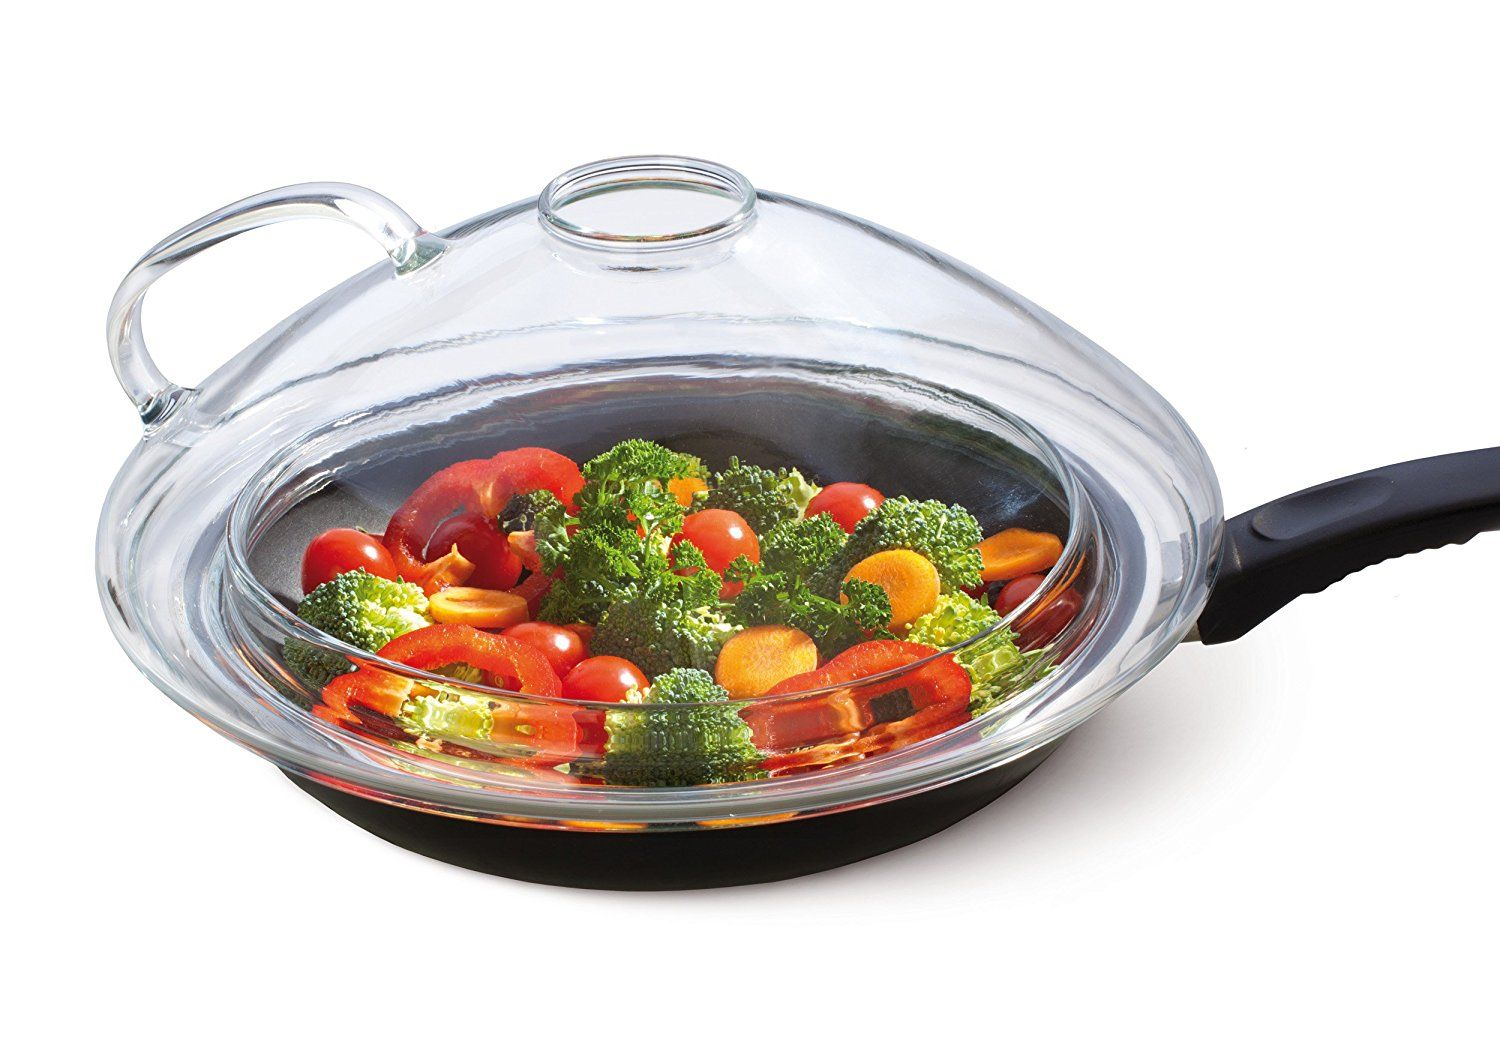 Cookware gt see more select by calphalon ceramic nonstick 8 inch an - Simax Glassware Universal Lid For 9 5 To 11 Inch Pans Clear See